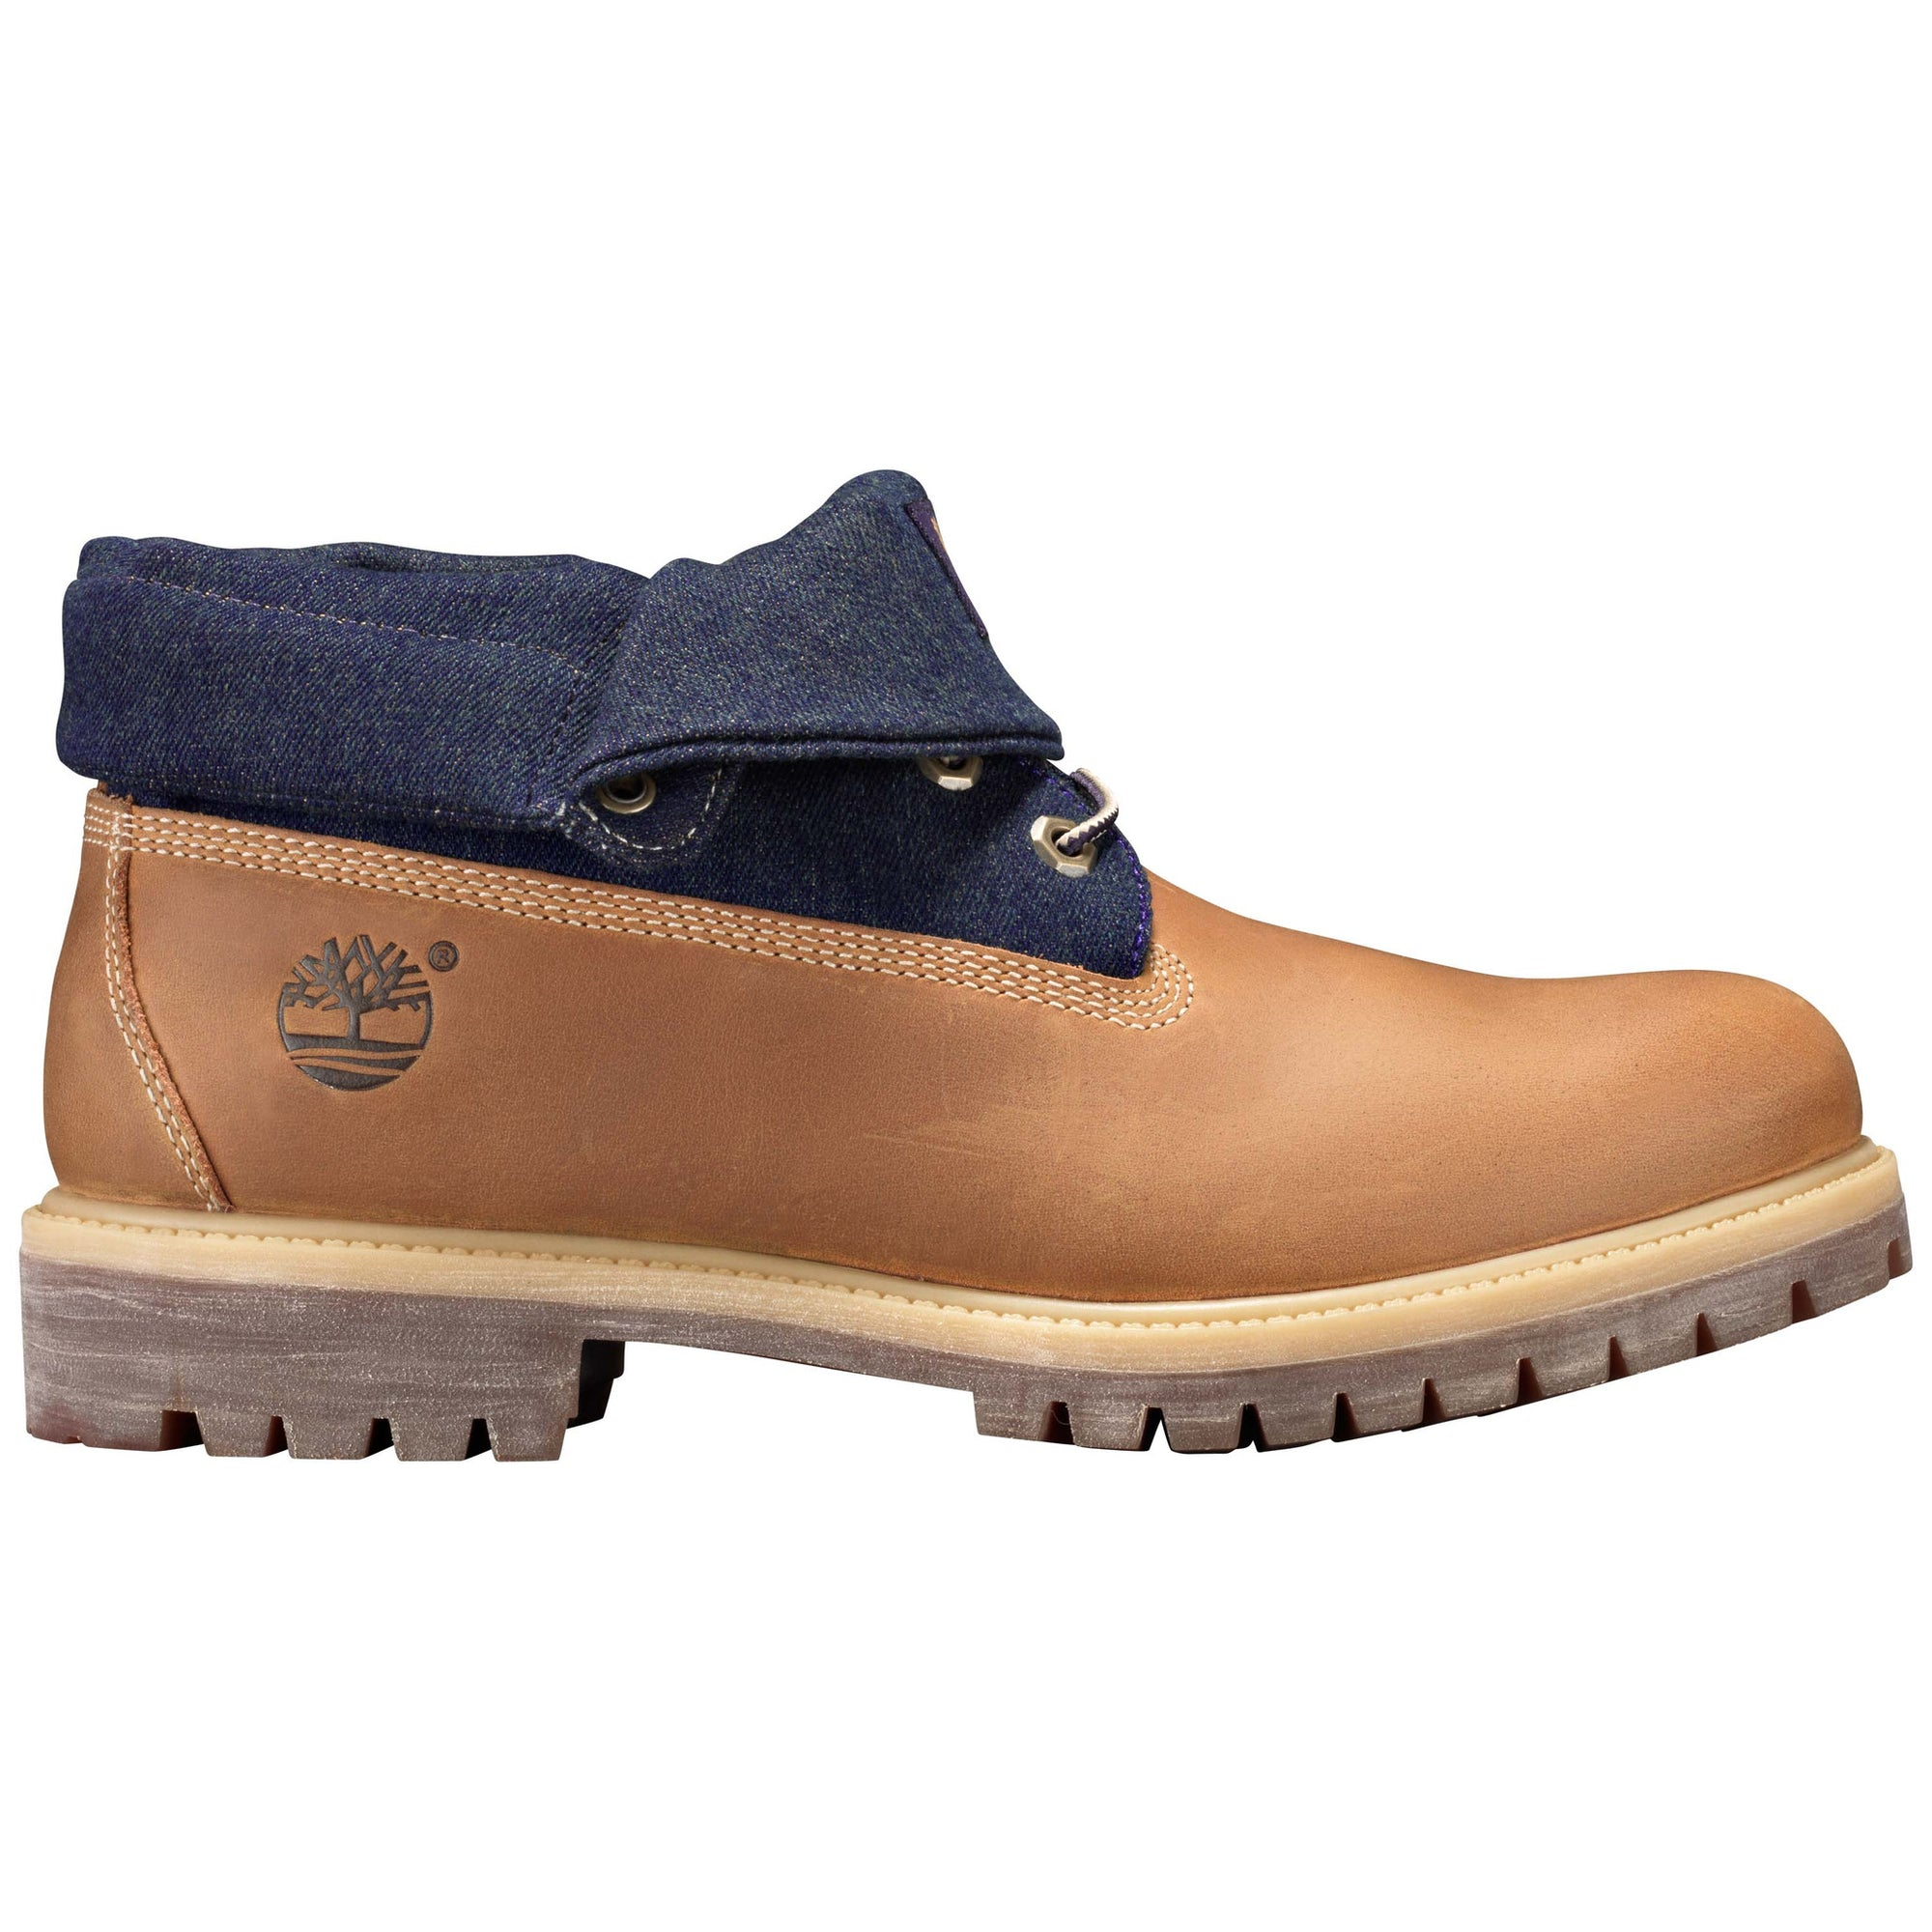 188ddc6fed4 Timberland Icon Roll Top Fabric Premium Mens Boot (Wheat) limited